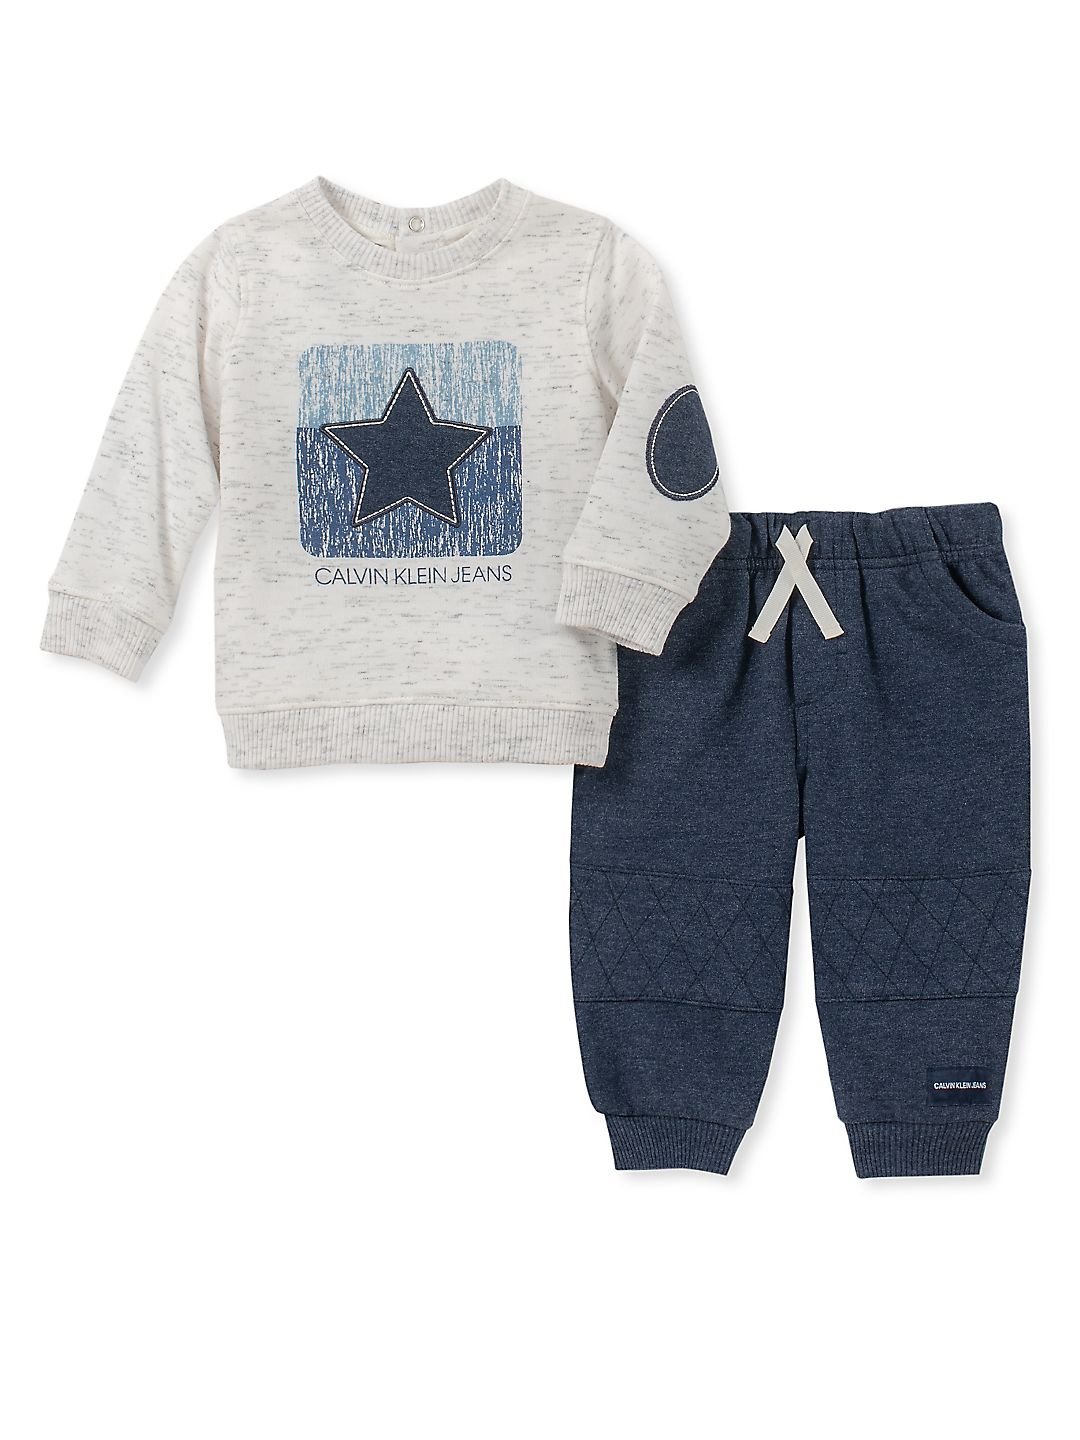 Baby Boy's Two-Piece Top & Pants Set